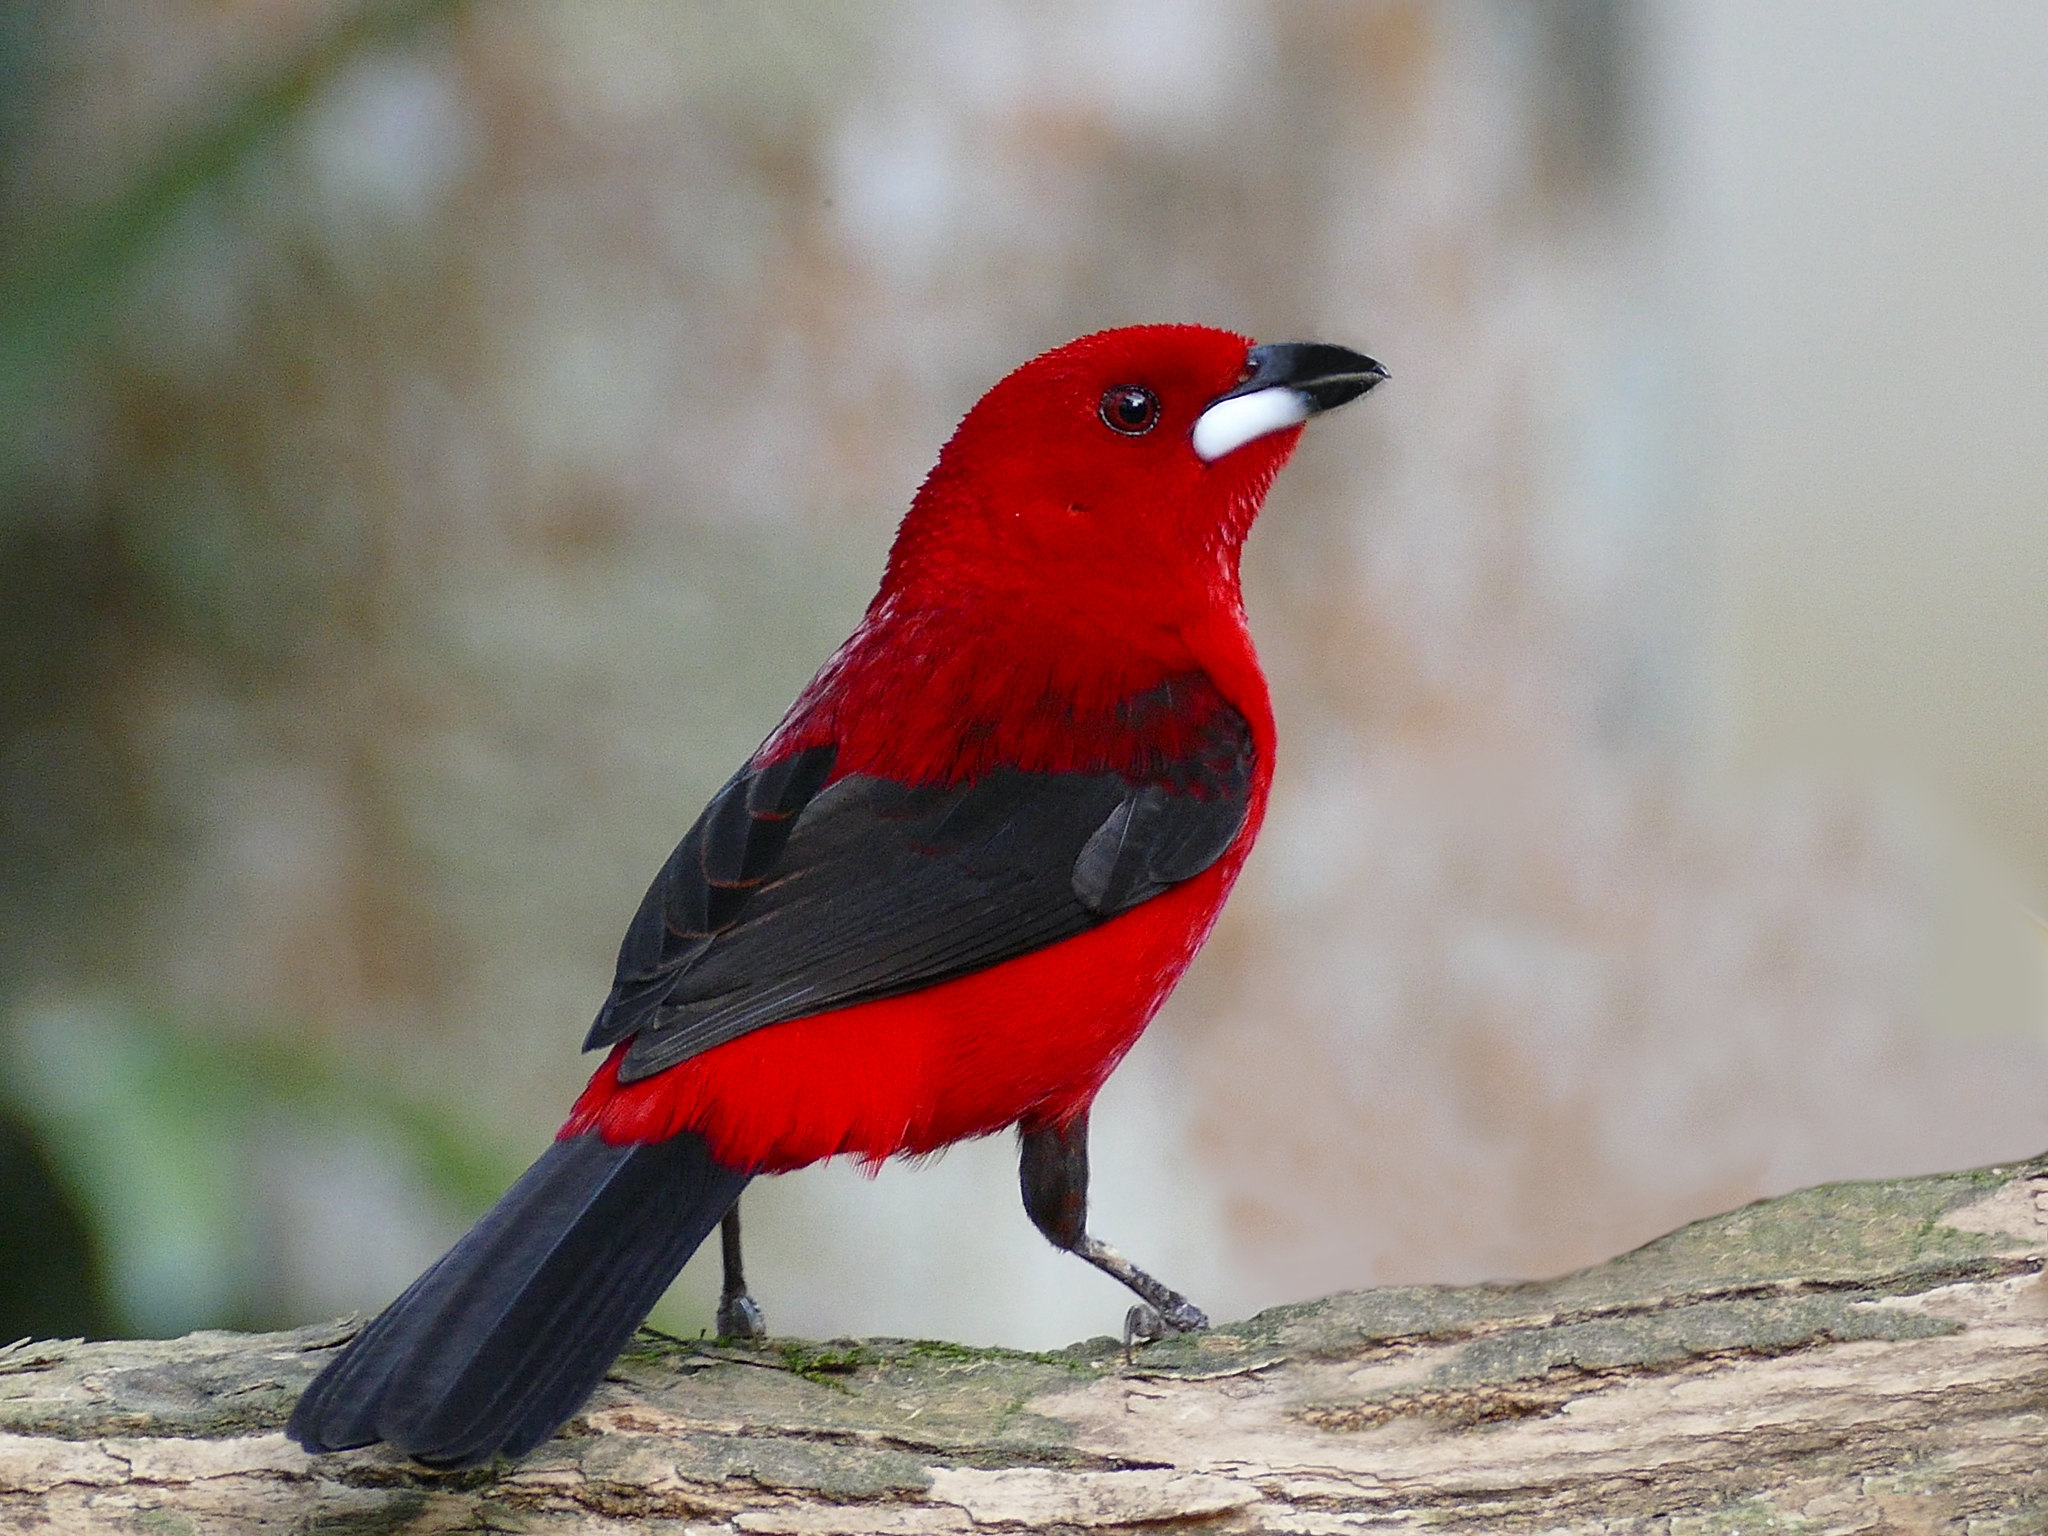 The Brazilian tanager having a good time on a branch in Brazil and being a cool bird.